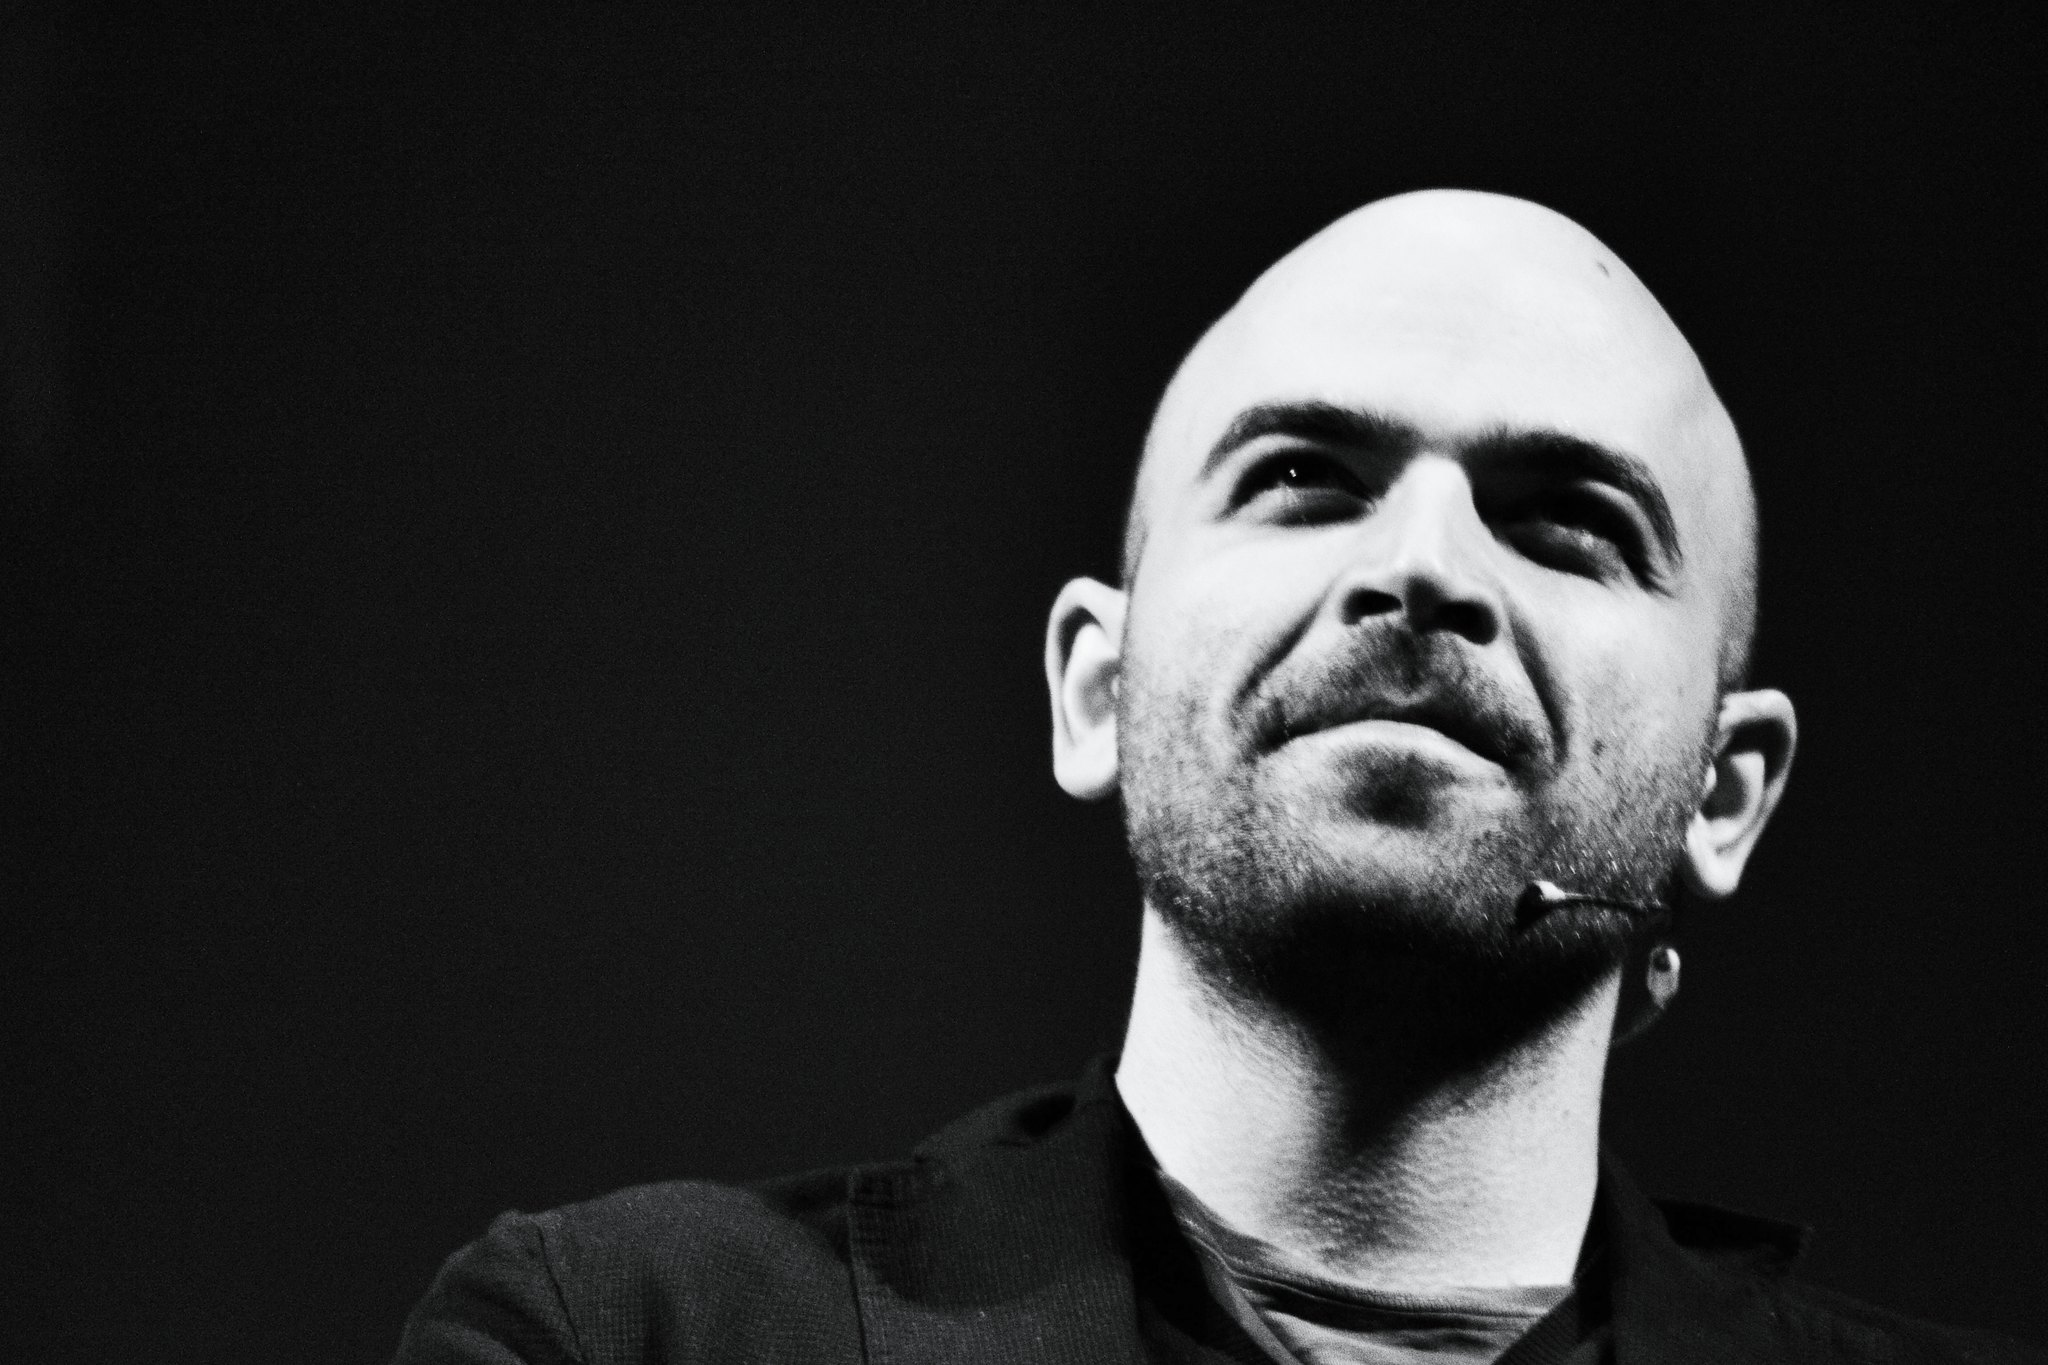 Event: Roberto Saviano With Emergency USA: Migration And NGOs